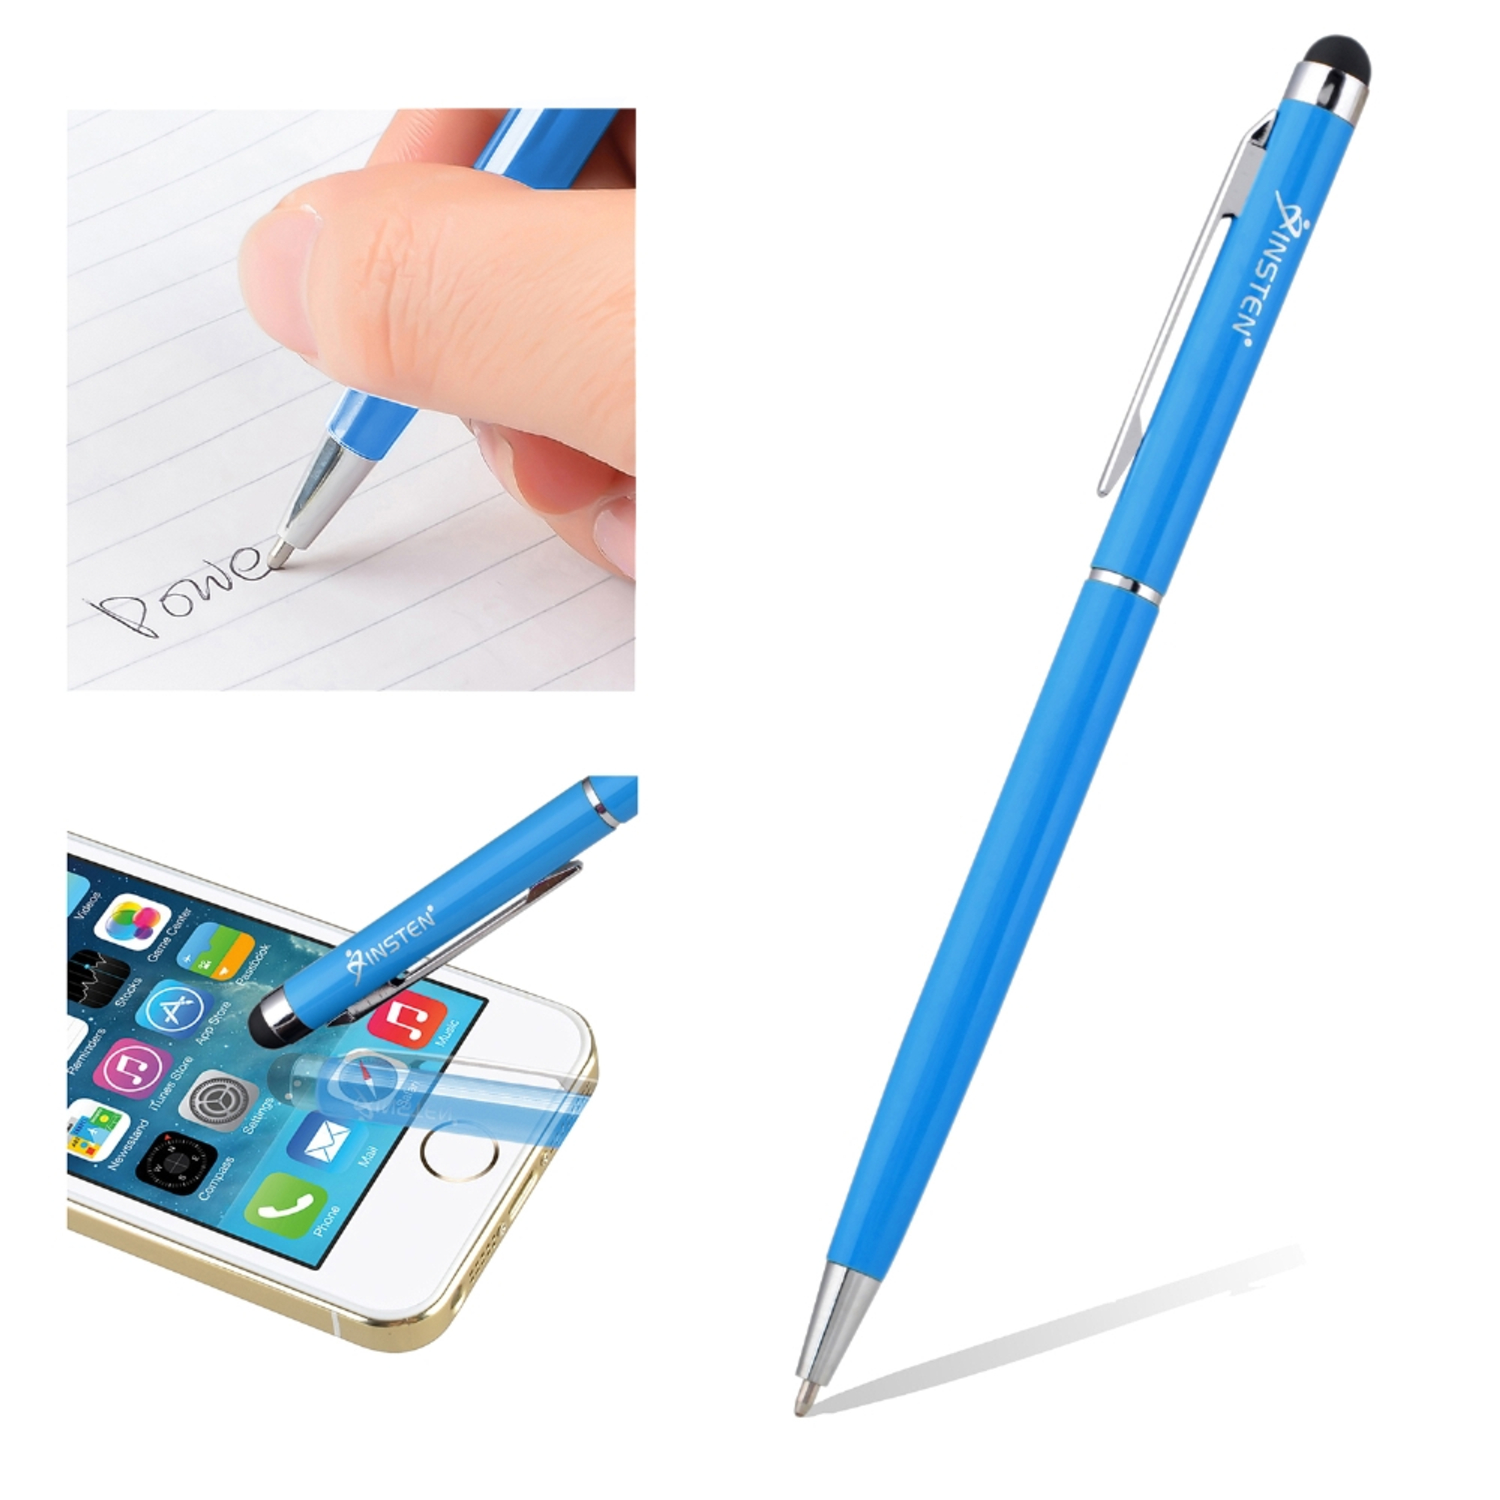 Insten Light Blue 2in1 Capacitive Touch Screen Stylus with Ball Point Pen For Mobile Phone Tablet Cell Phone iPhone